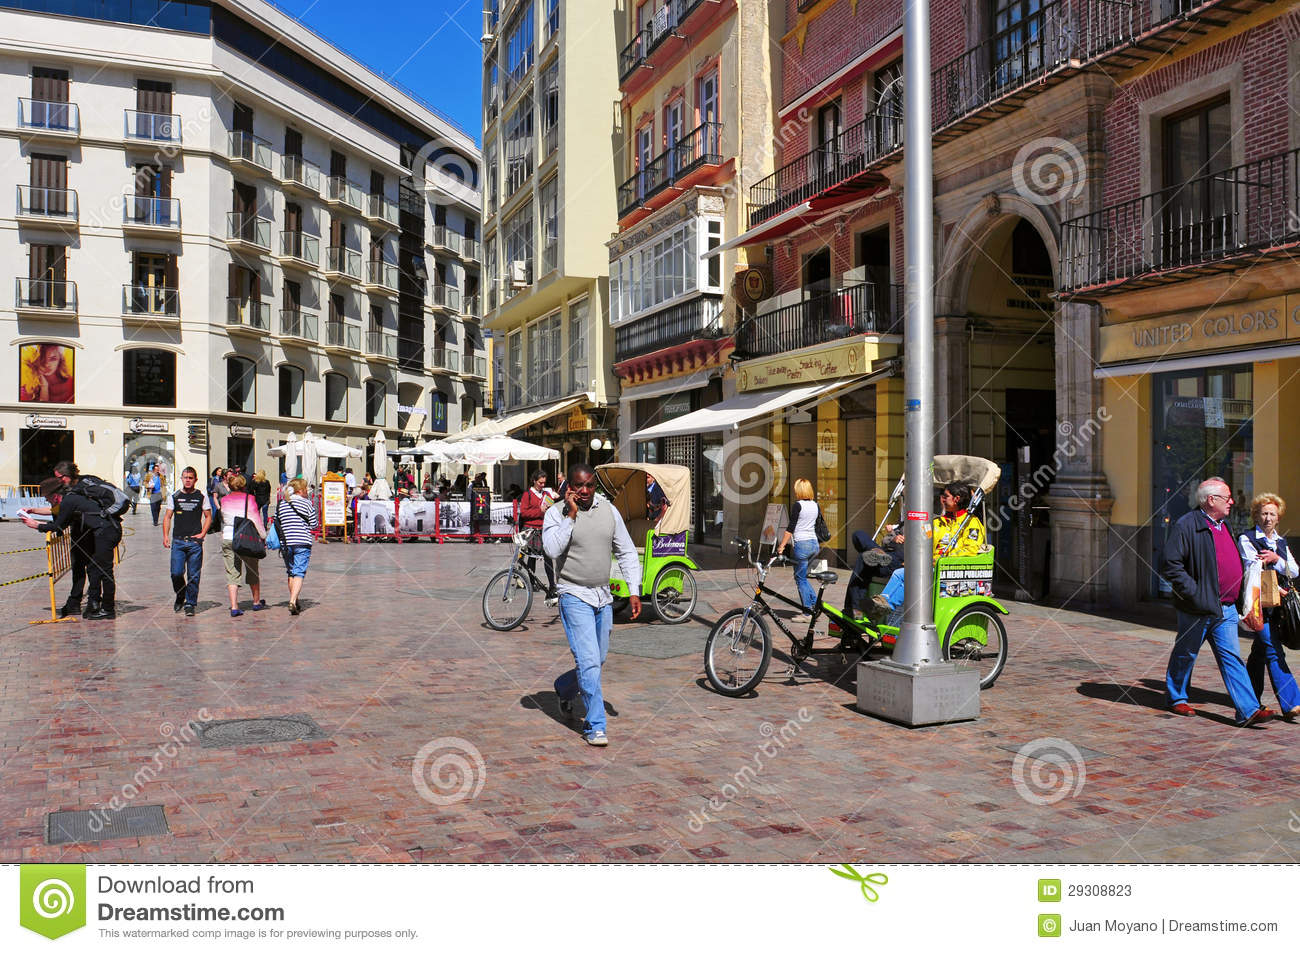 calle larios in malaga spain editorial stock photo image 29308823. Black Bedroom Furniture Sets. Home Design Ideas